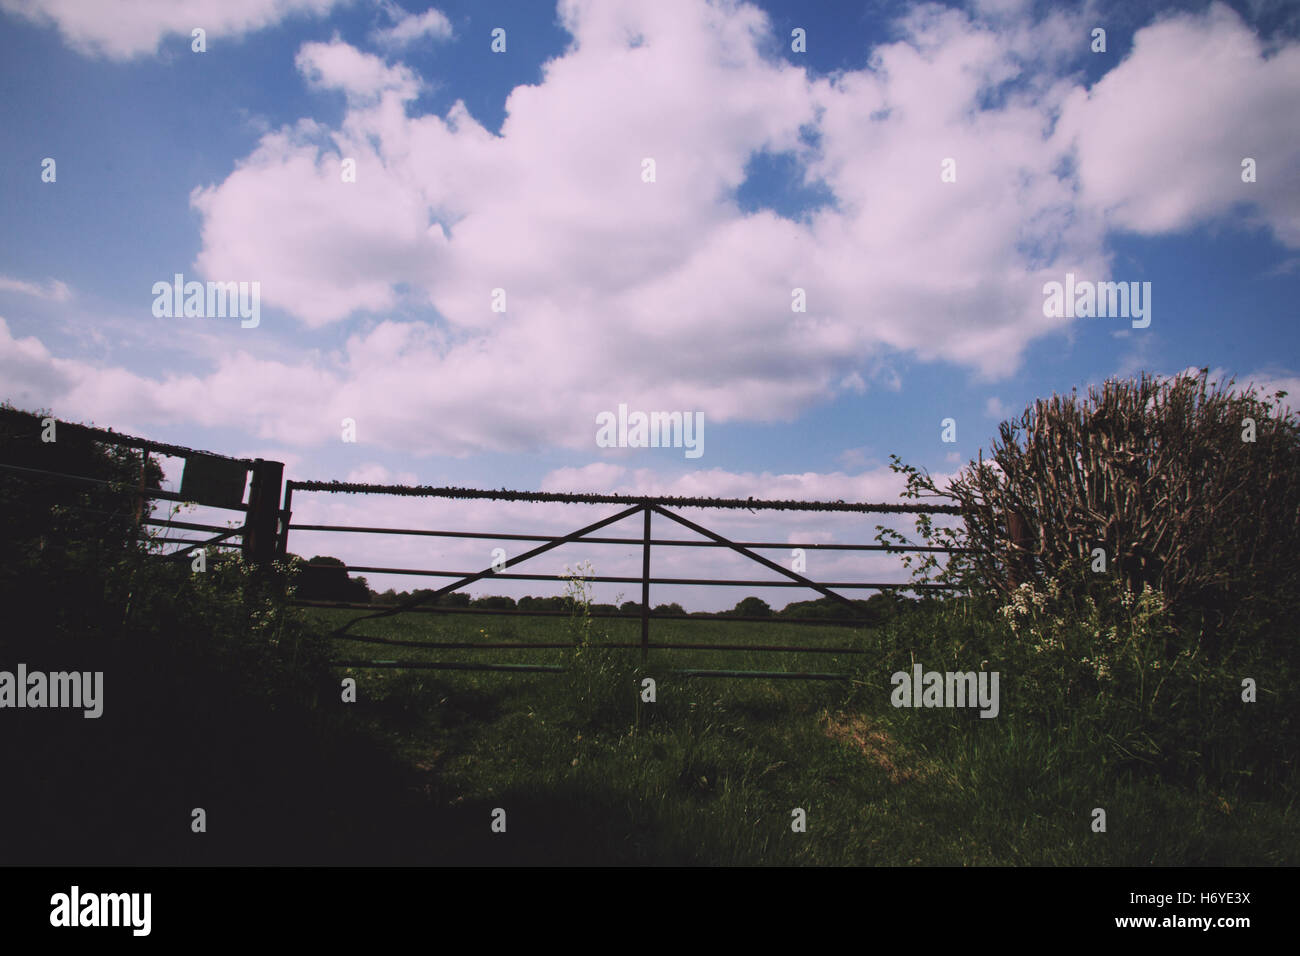 Old metal gate in a hedge with blue sky Vintage Retro Filter. - Stock Image